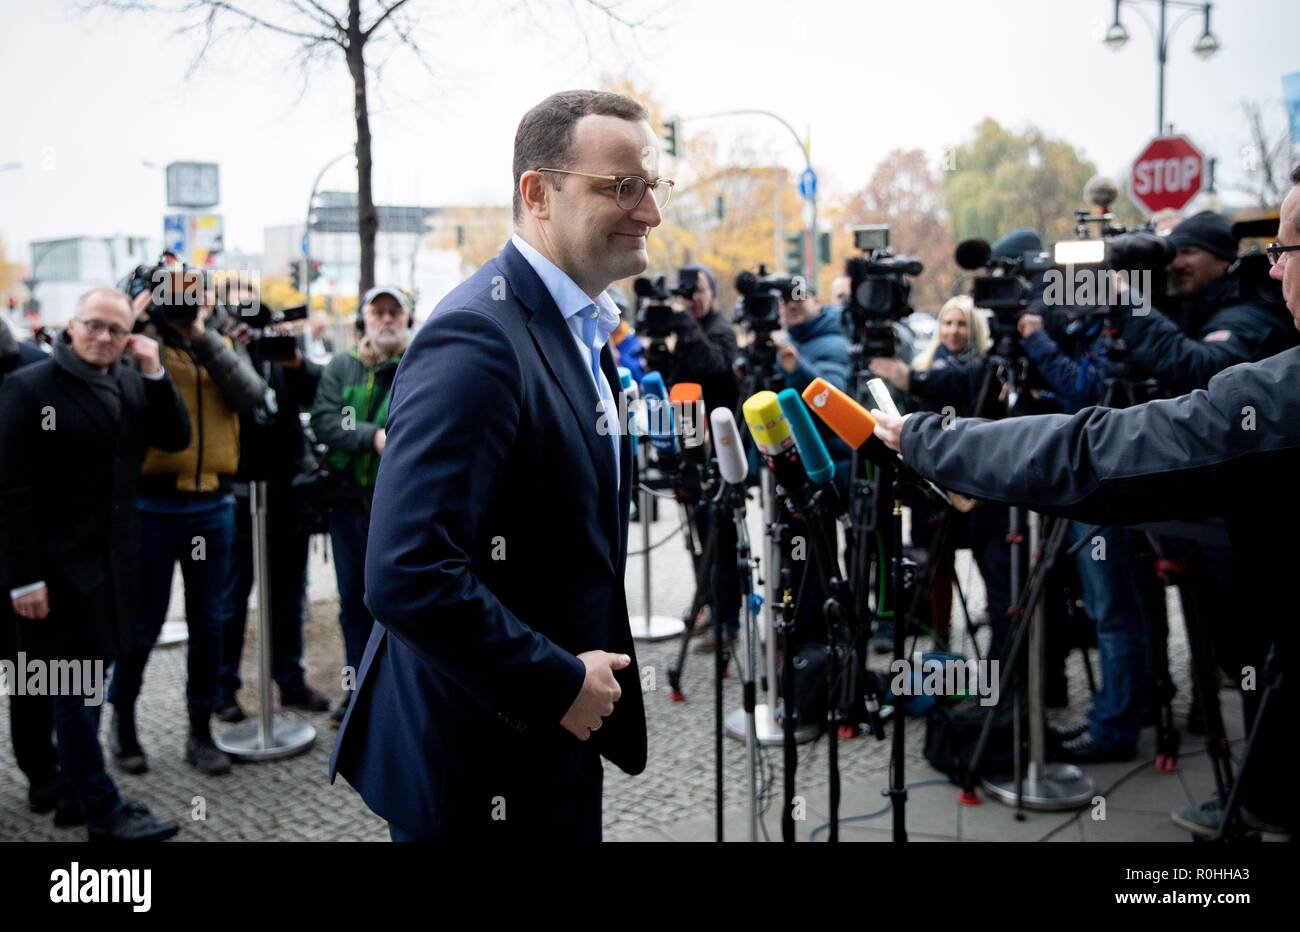 Berlin, Germany. 05th Nov, 2018. Jens Spahn (CDU), Federal Minister of Health, comes to the CDU headquarters, the Konrad Adenauer House. This is where the party leadership meets for a closed conference. Credit: Kay Nietfeld/dpa/Alamy Live News - Stock Image